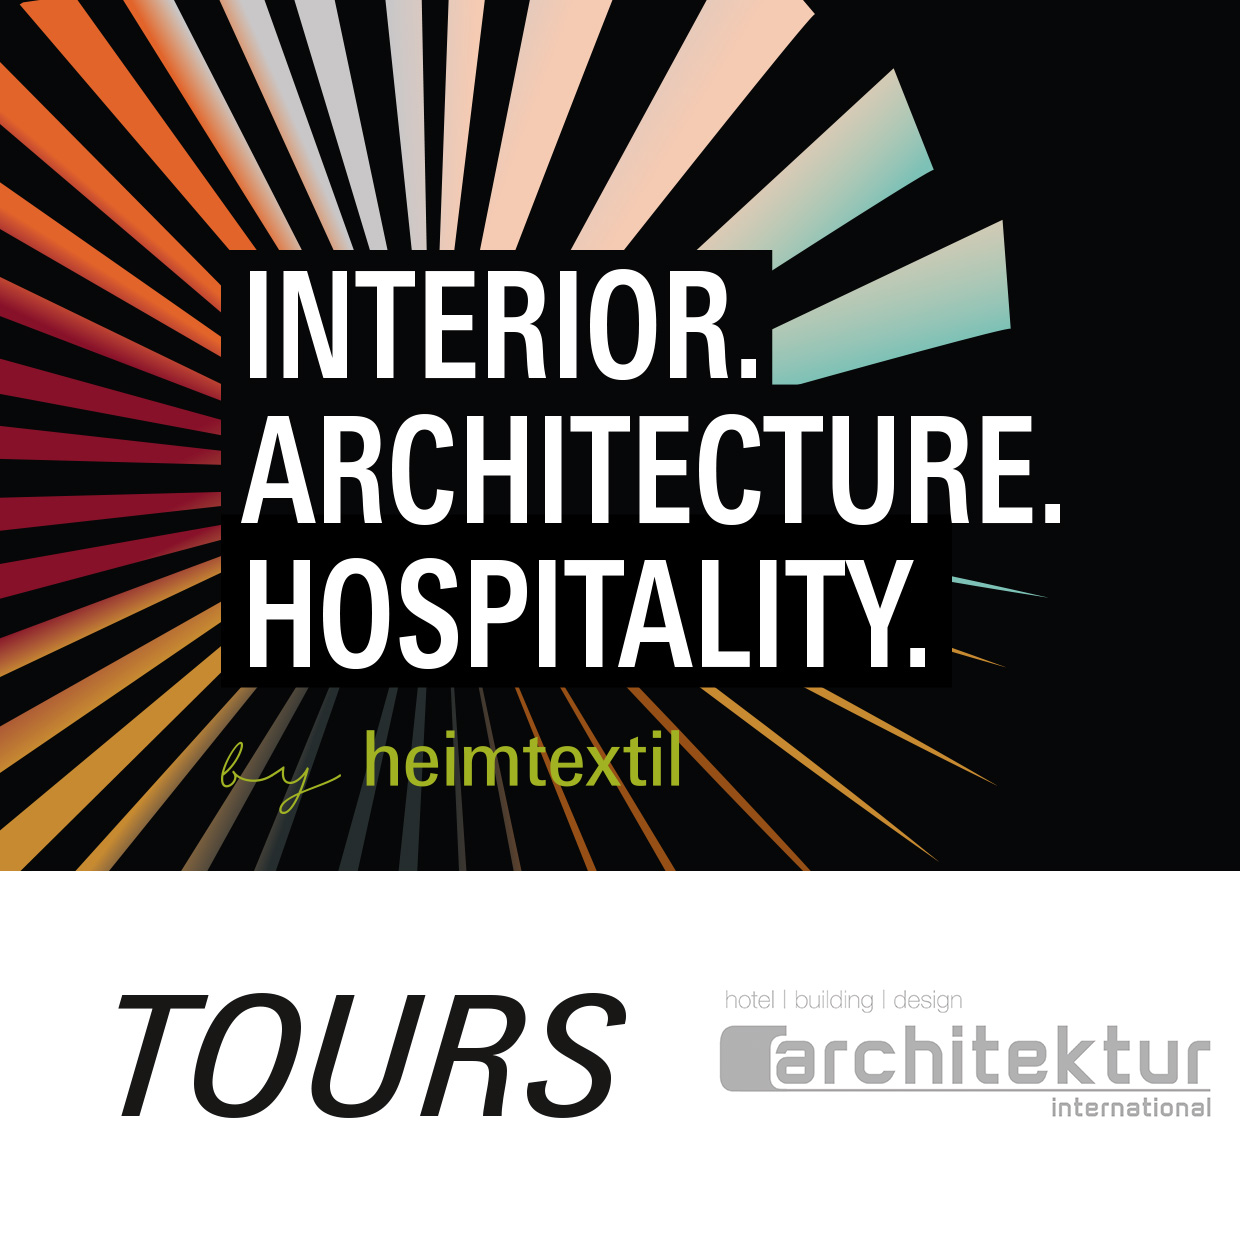 guided-tour-by-architektur-international---hotel-building-design